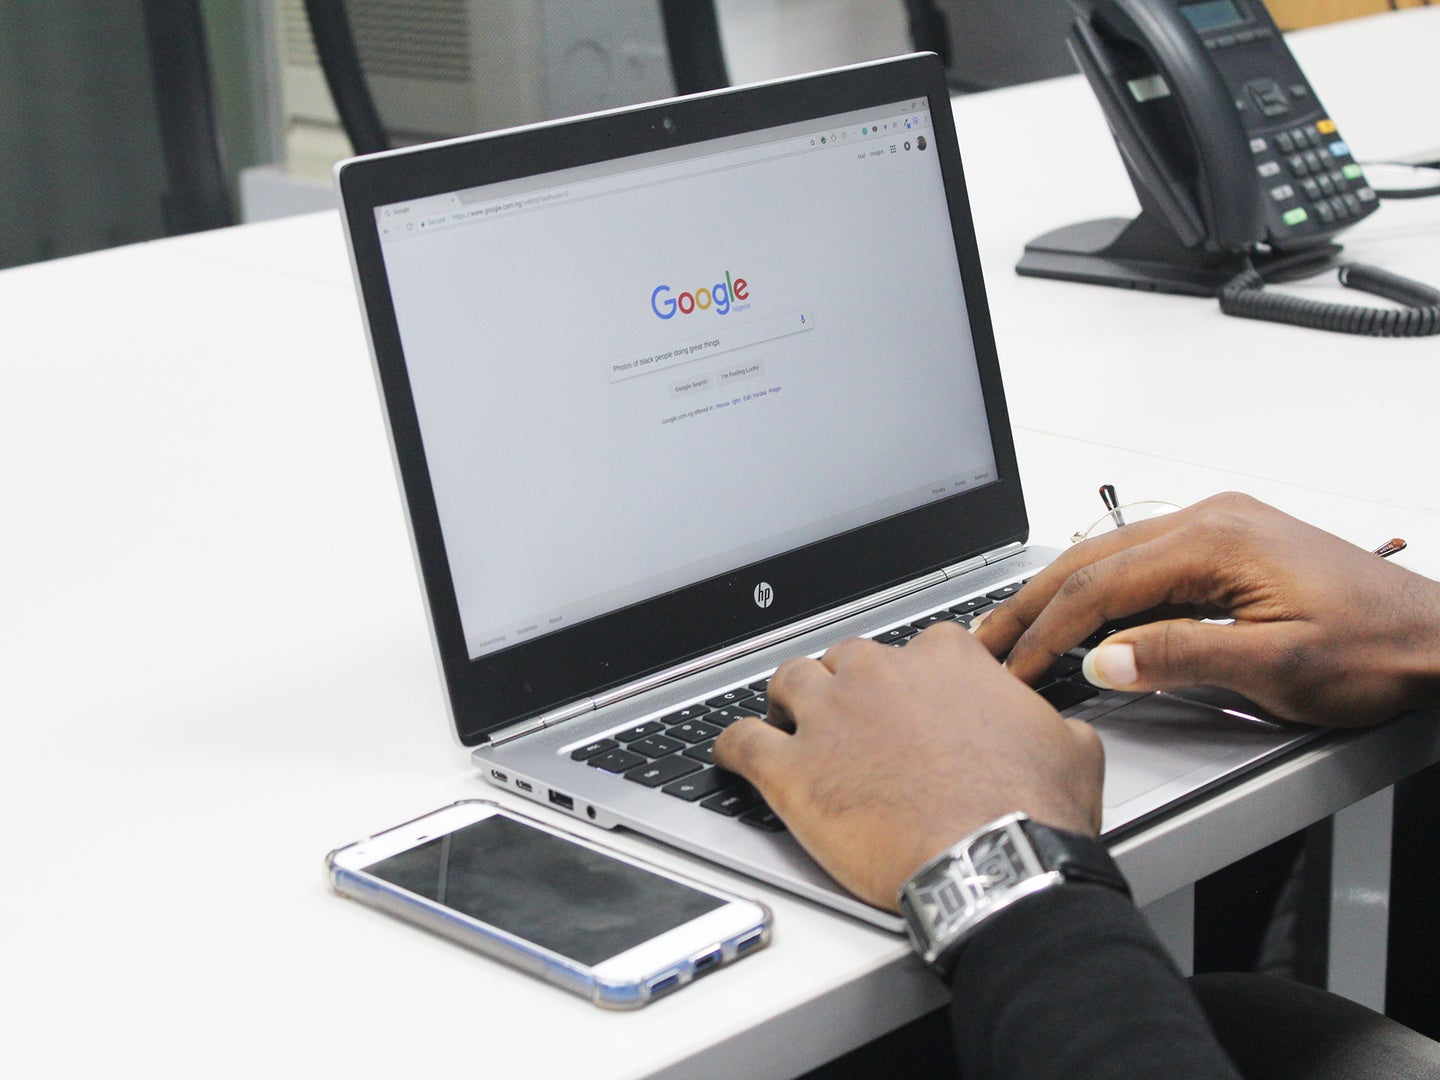 A person using a laptop computer with Google on the screen.